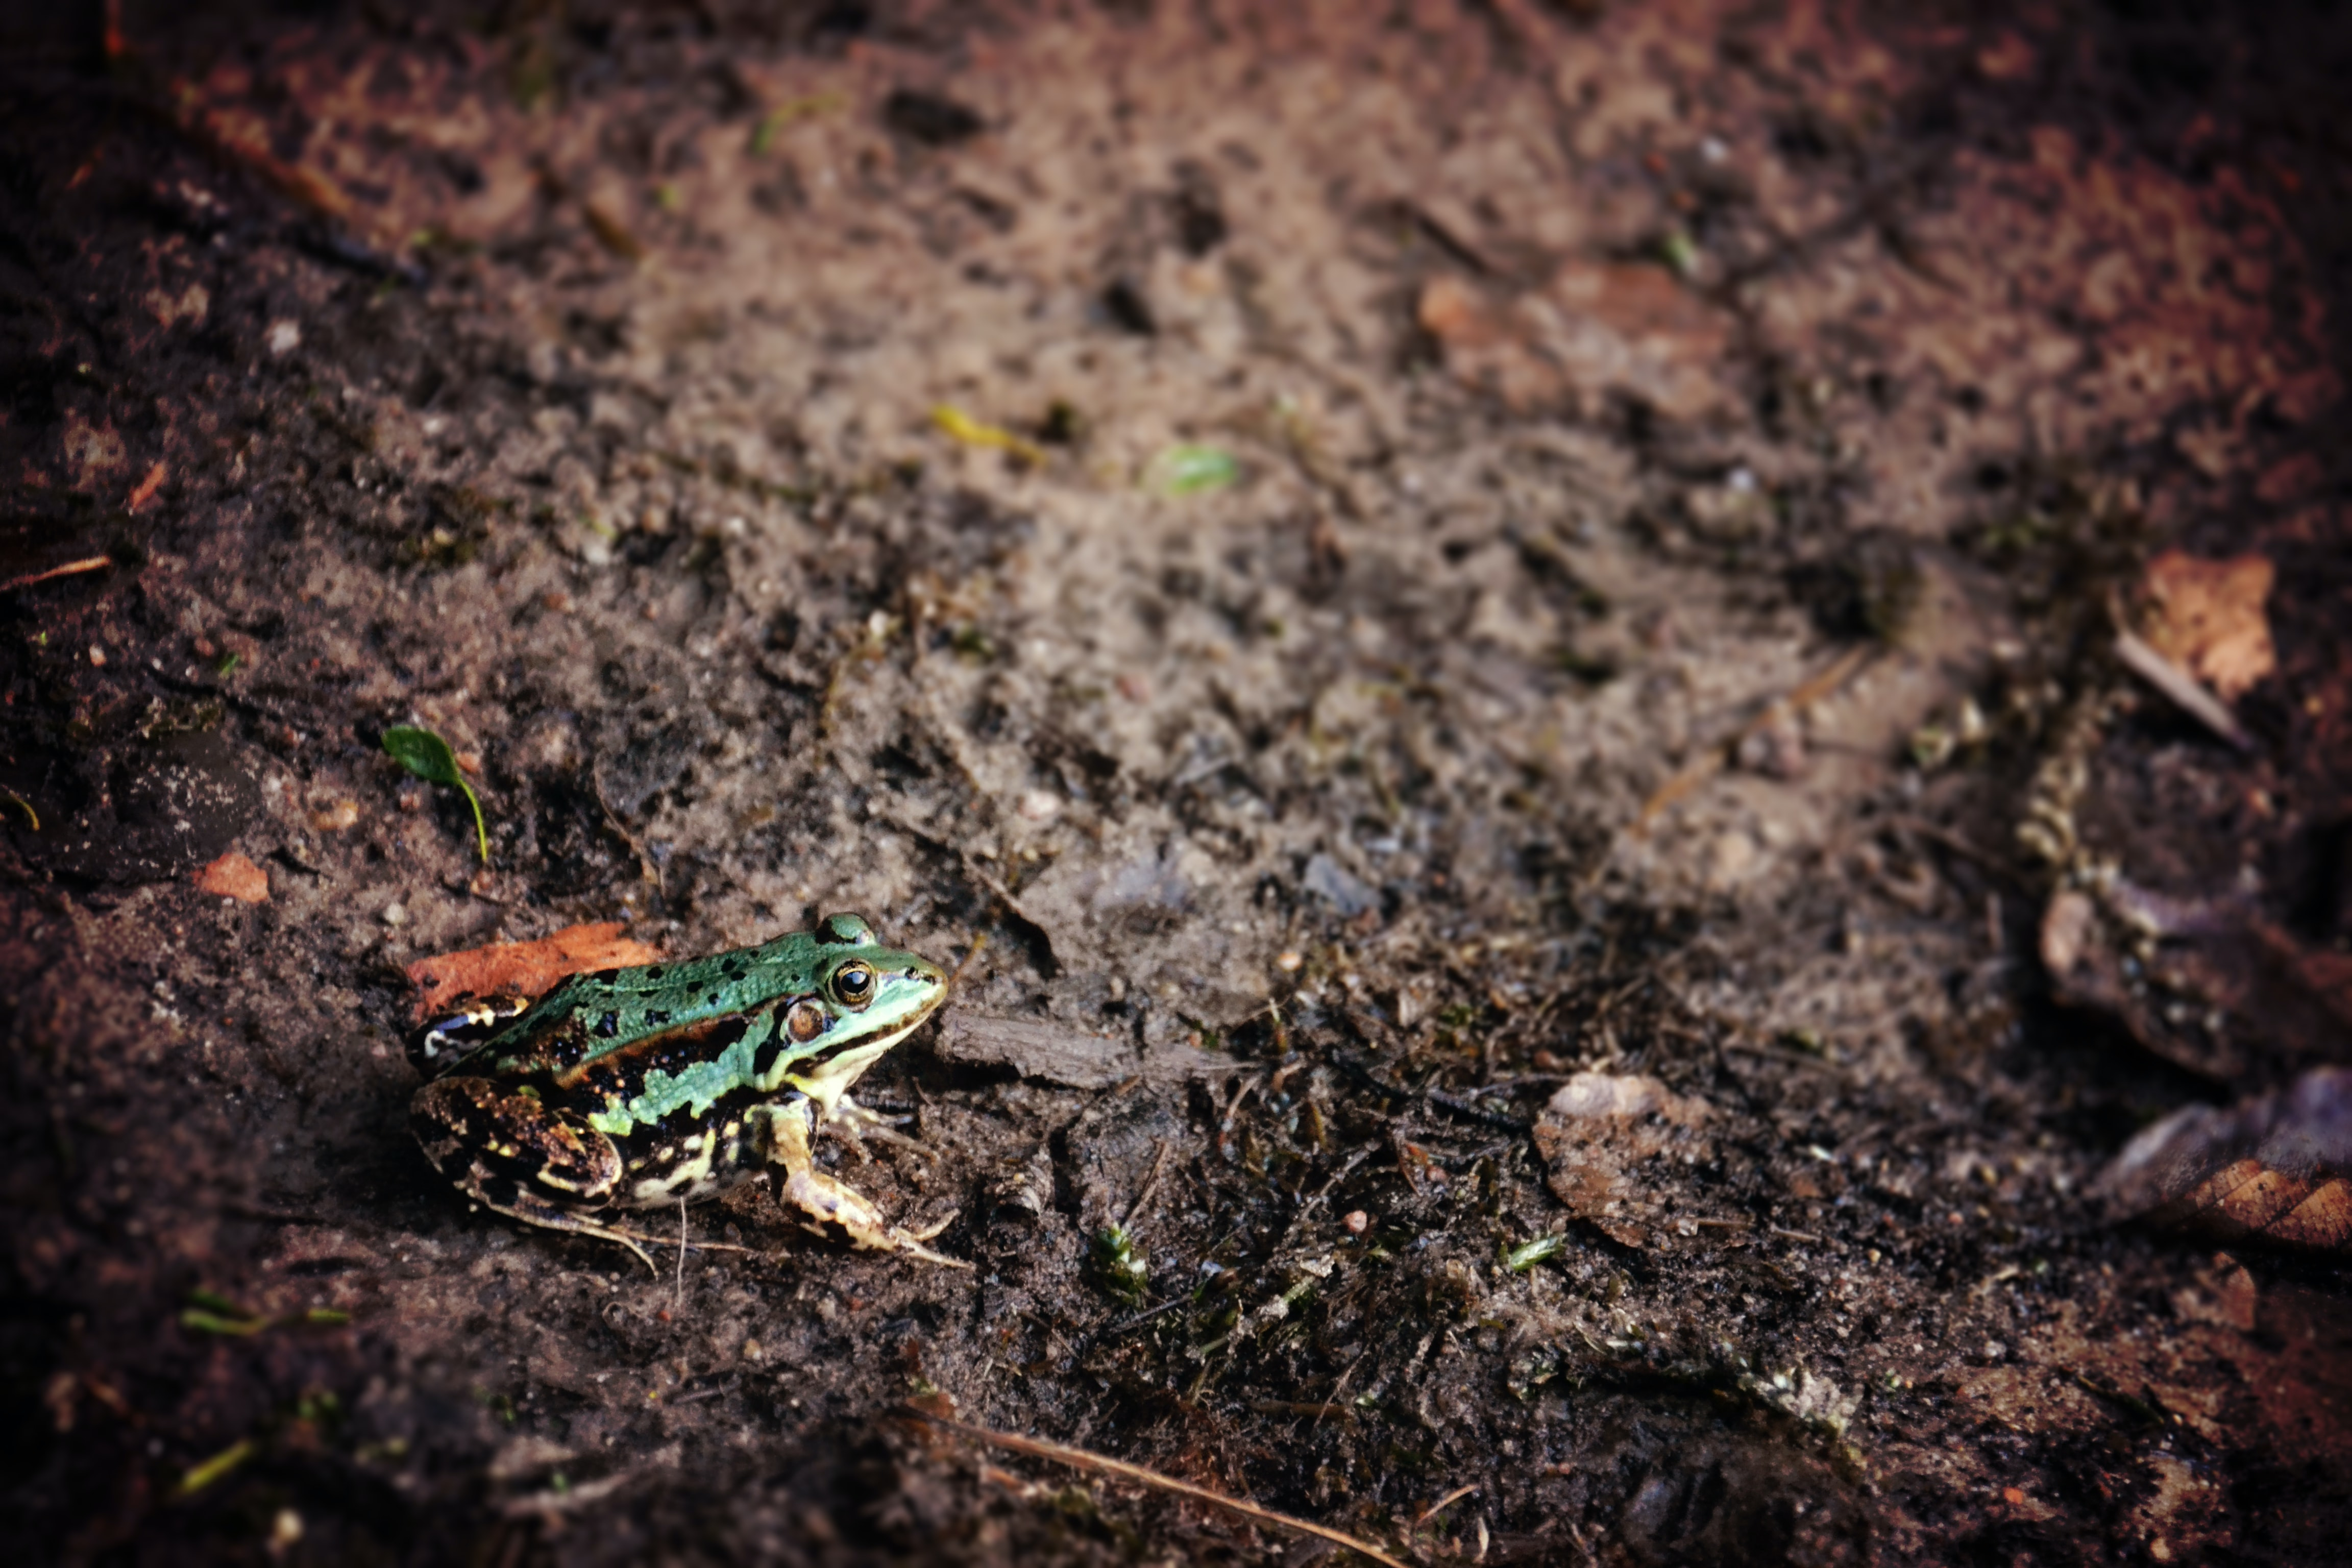 A green frog sitting on the muddy ground